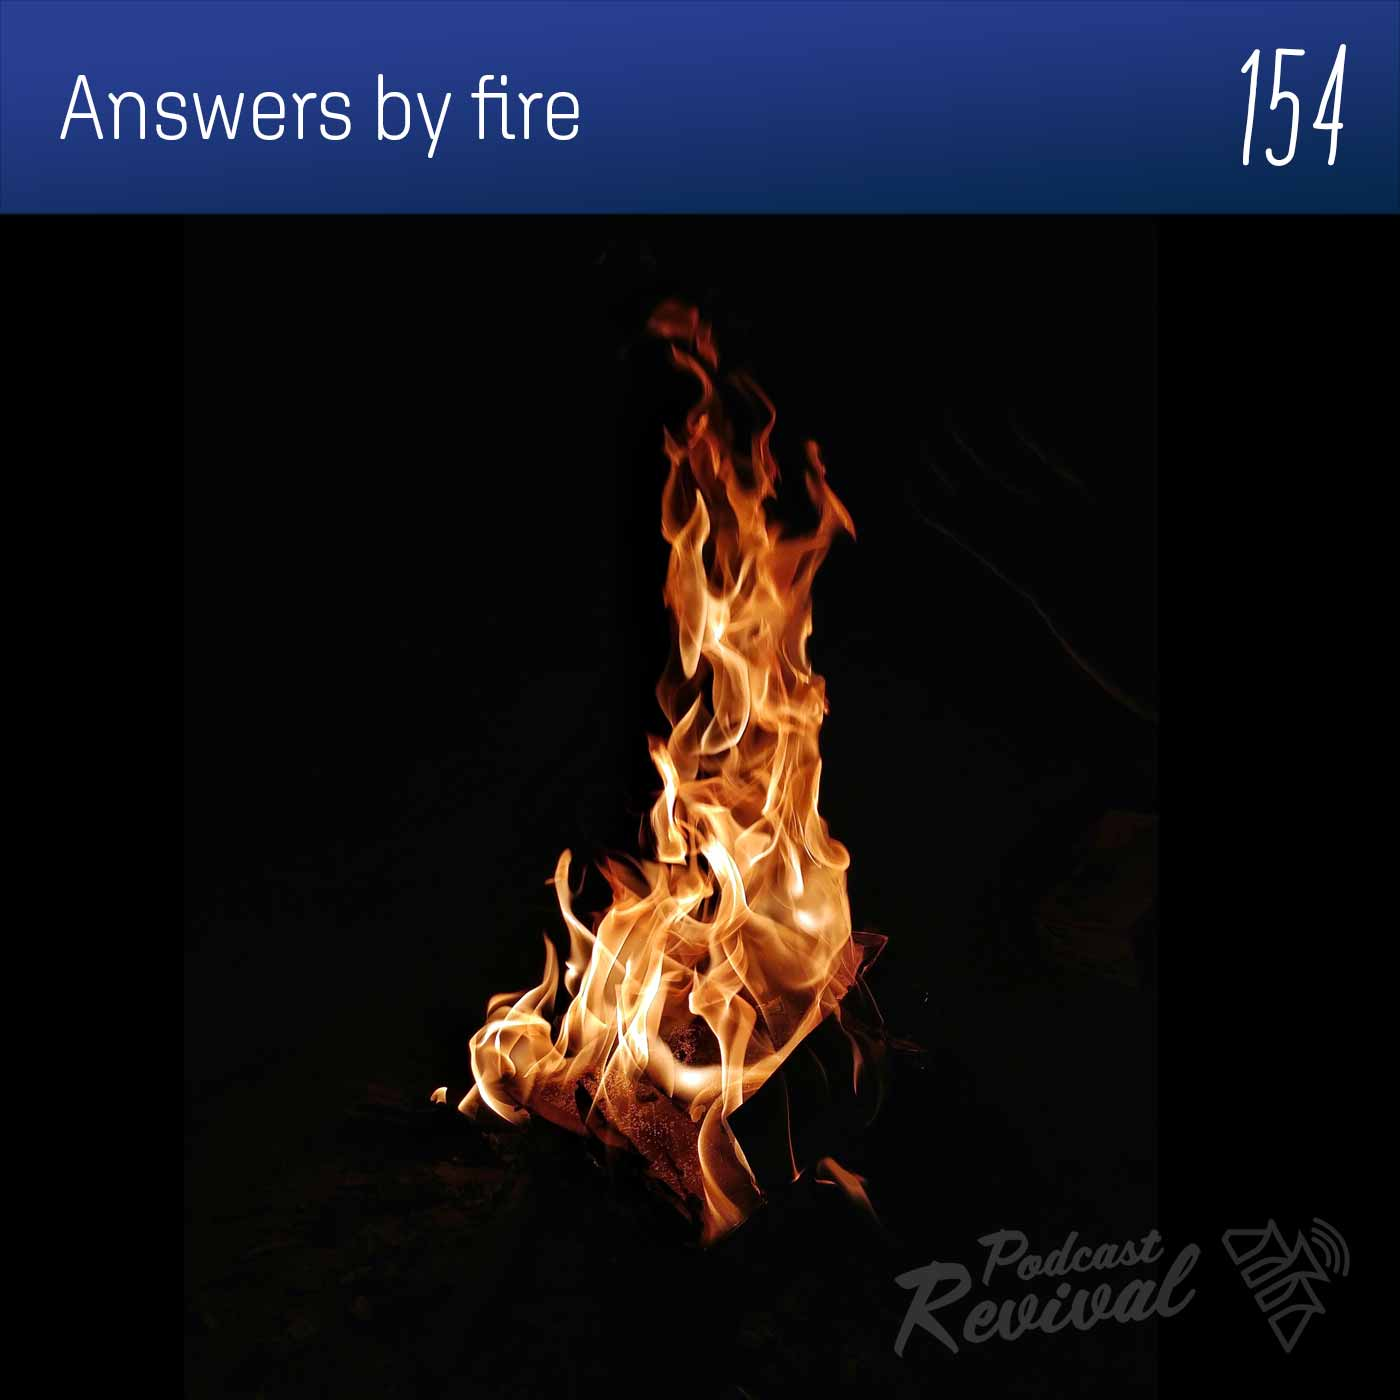 Faith in God that answers by fire